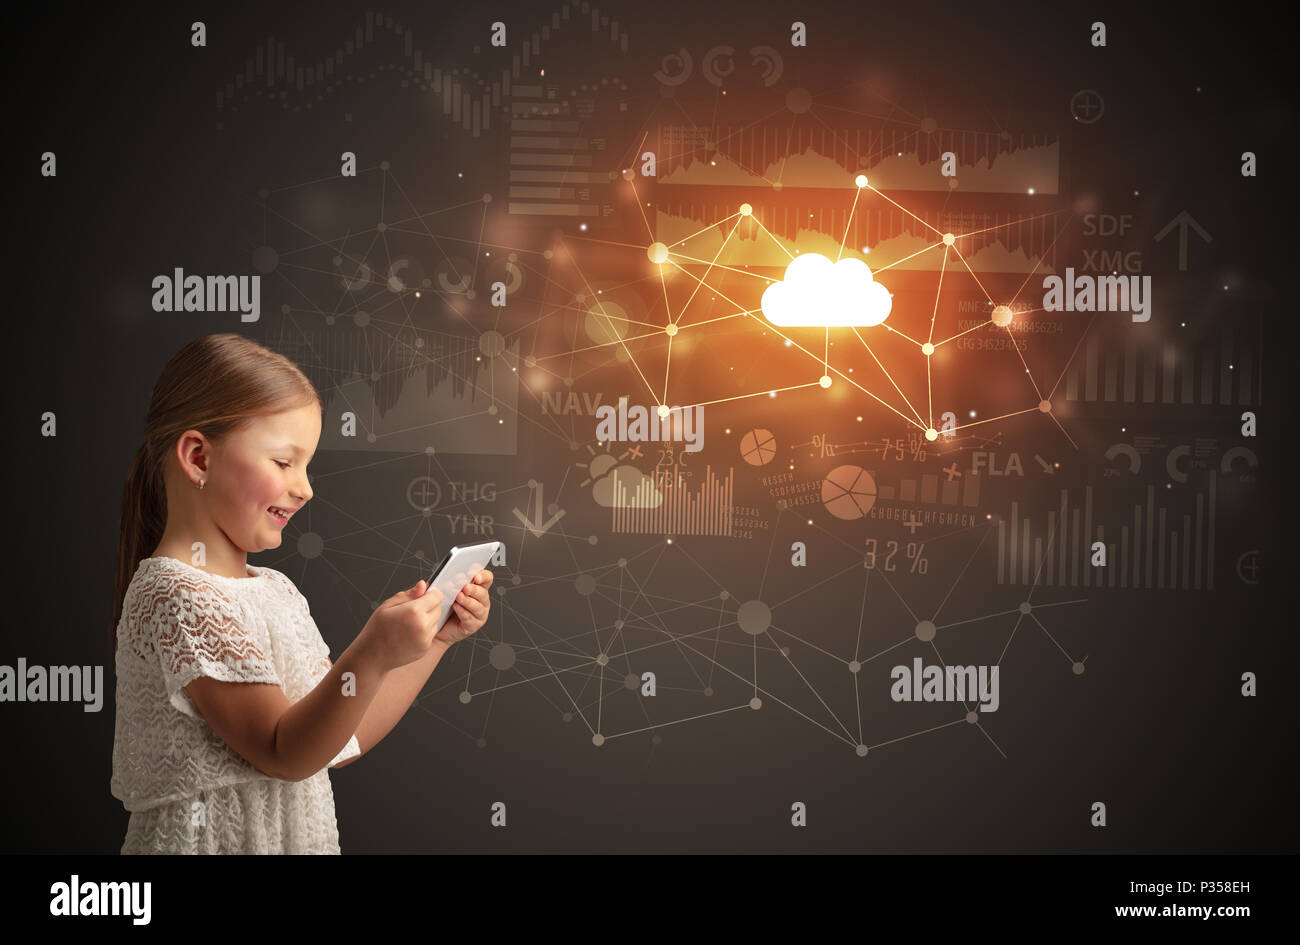 Adorable girl working on tablet with cloud technology concept  - Stock Image